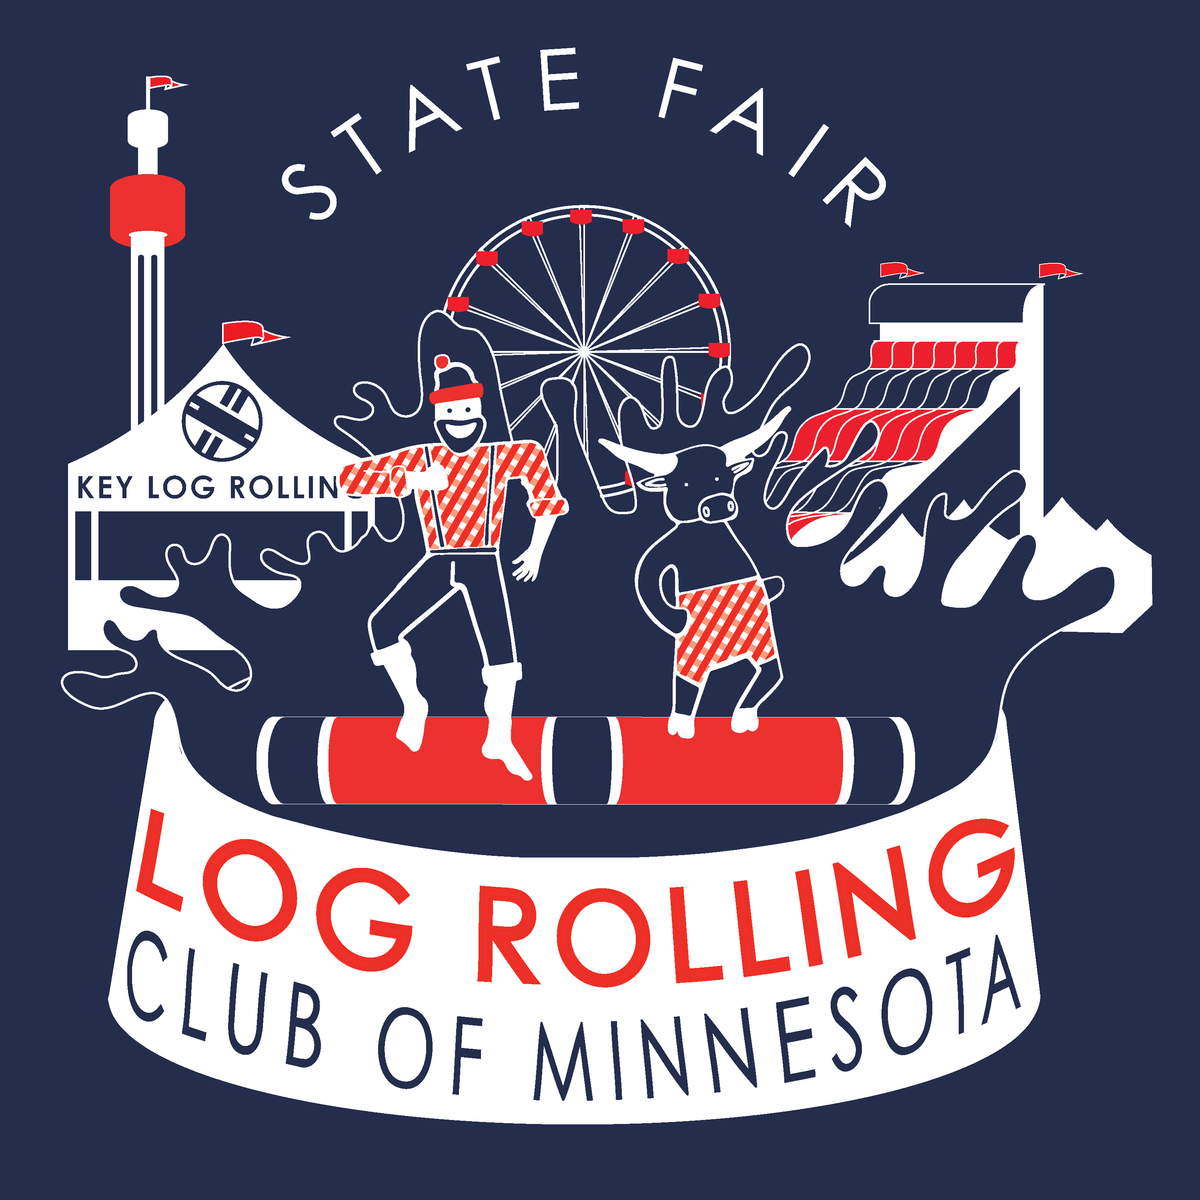 MN State Fair Log Rolling Club - Key Log Rolling